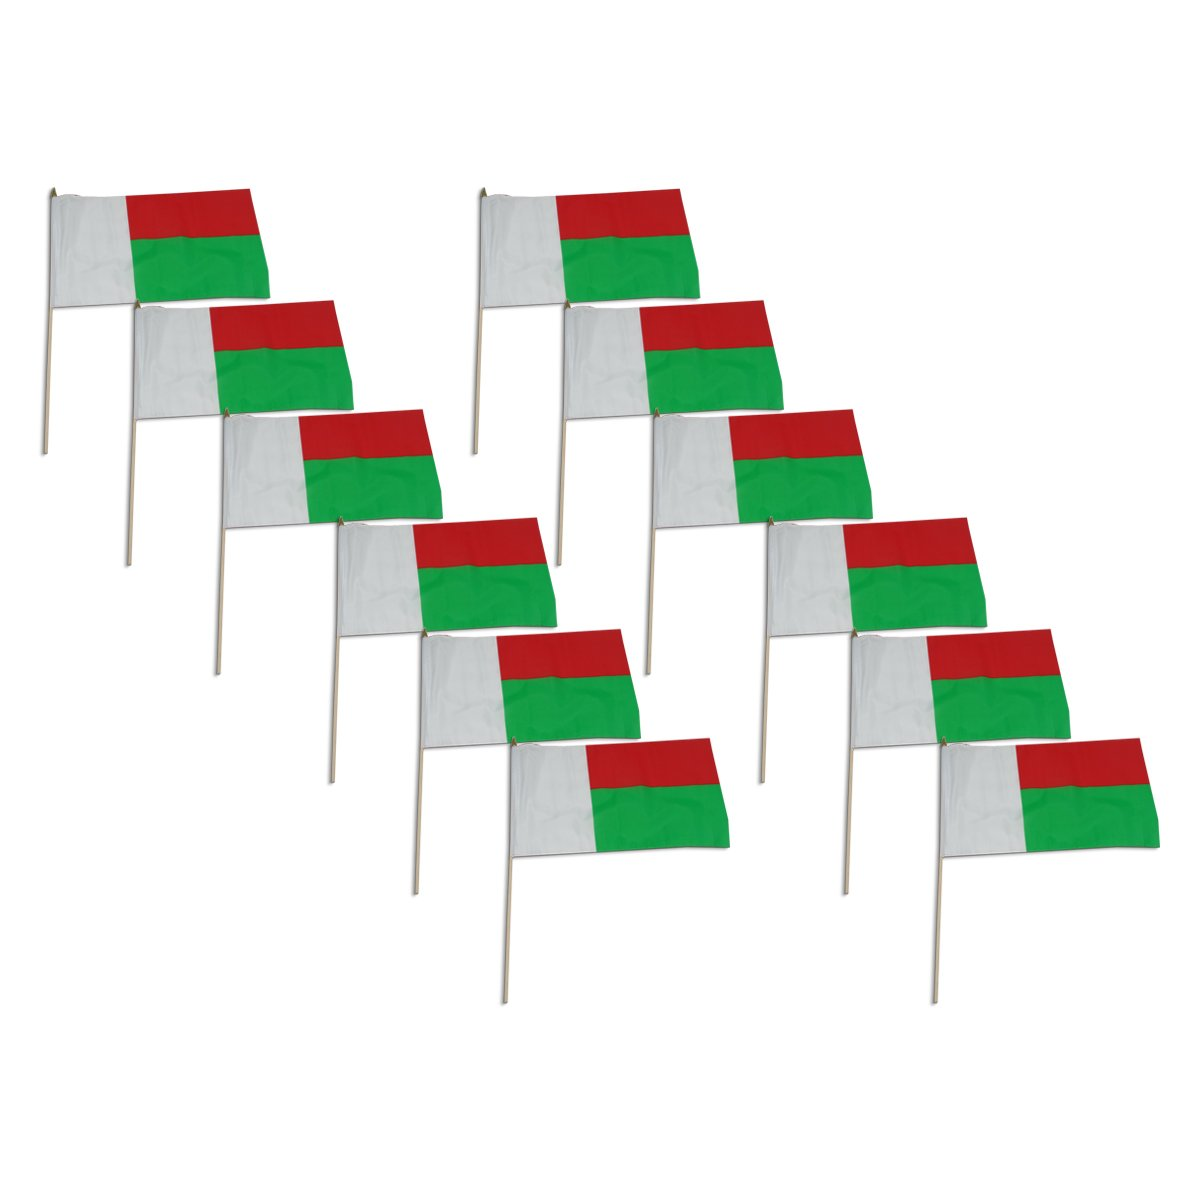 US Flag Store Madagascar Flag, 12 by 18-Inch Online Stores Inc. WMG1218HF